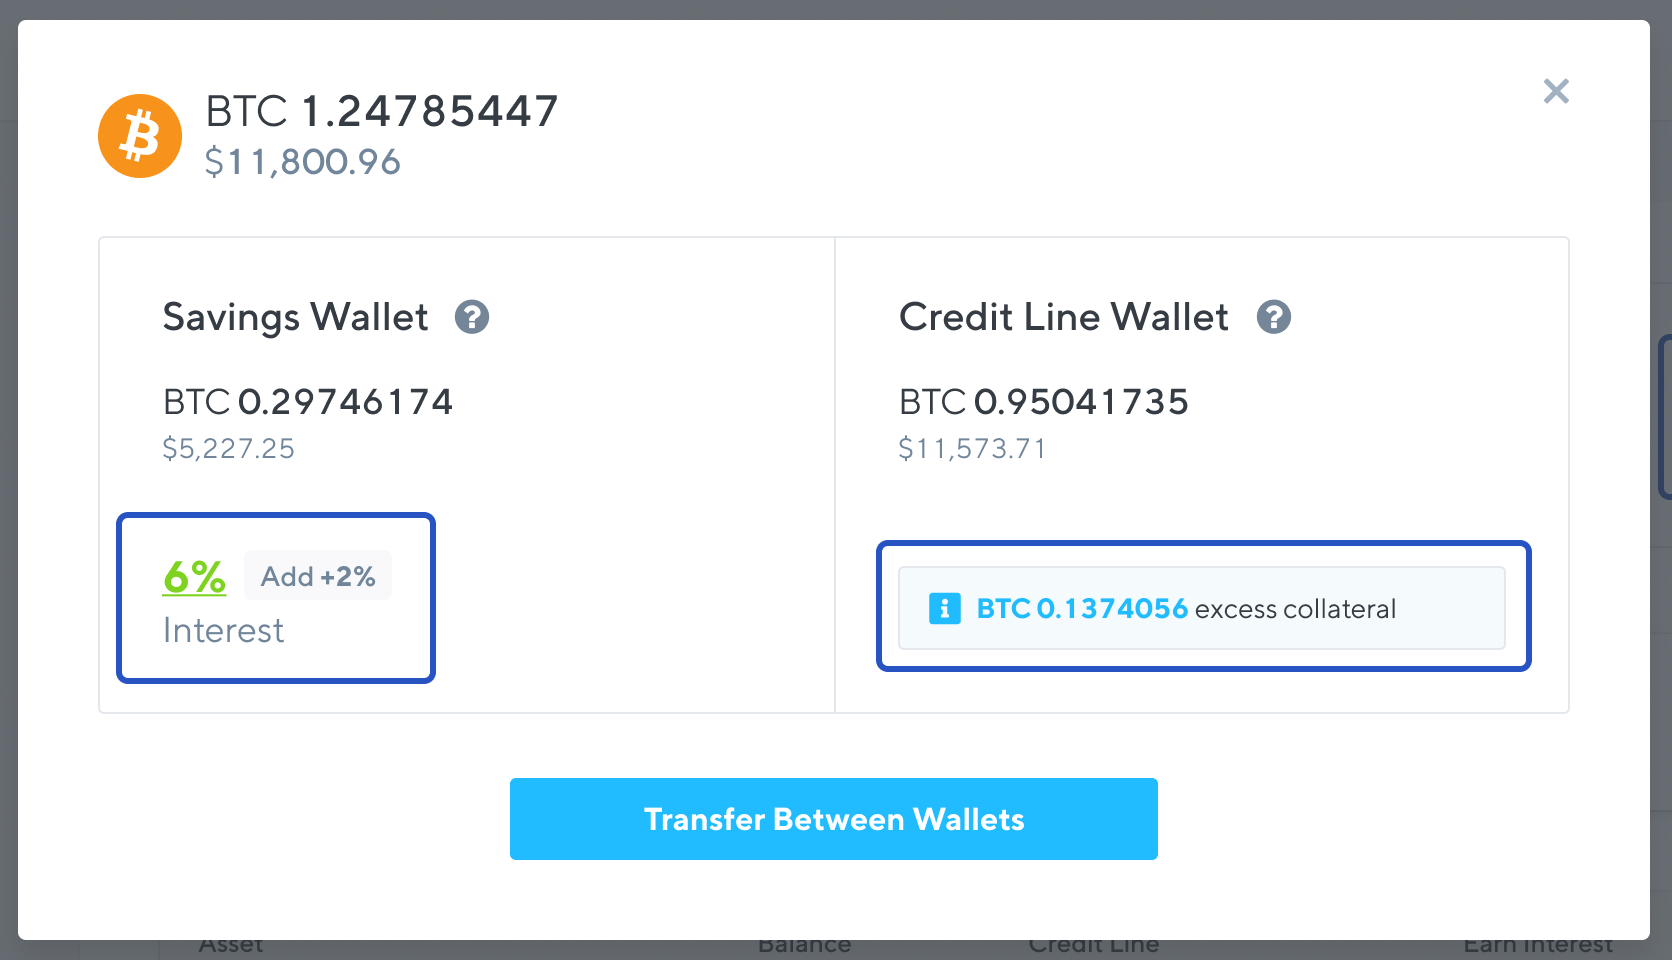 faq-dashboard-manage-wallets-showcase_2x.png